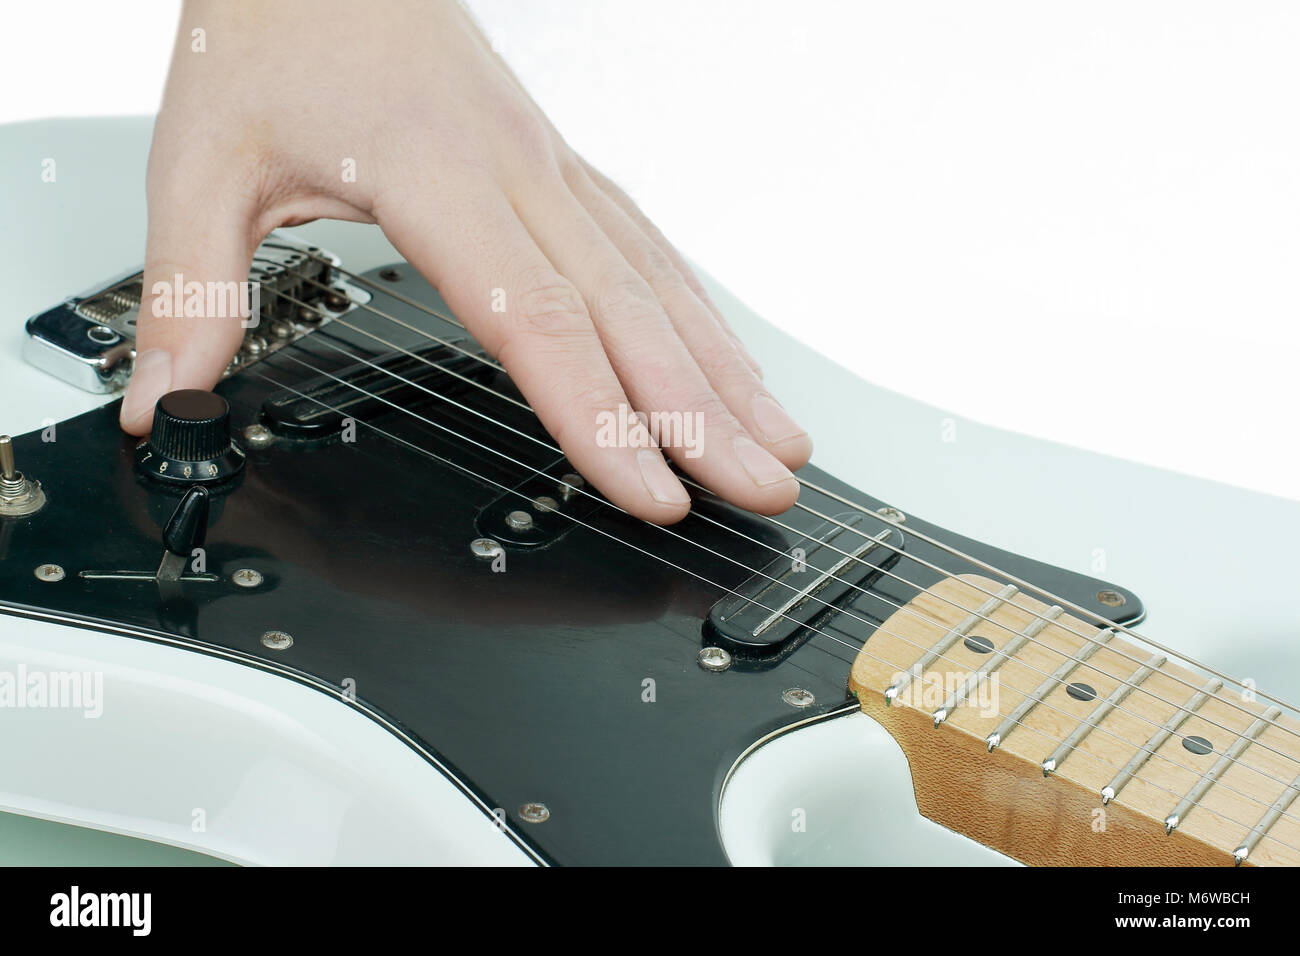 closeup.the hand of the musician stroking the strings of a guit - Stock Image